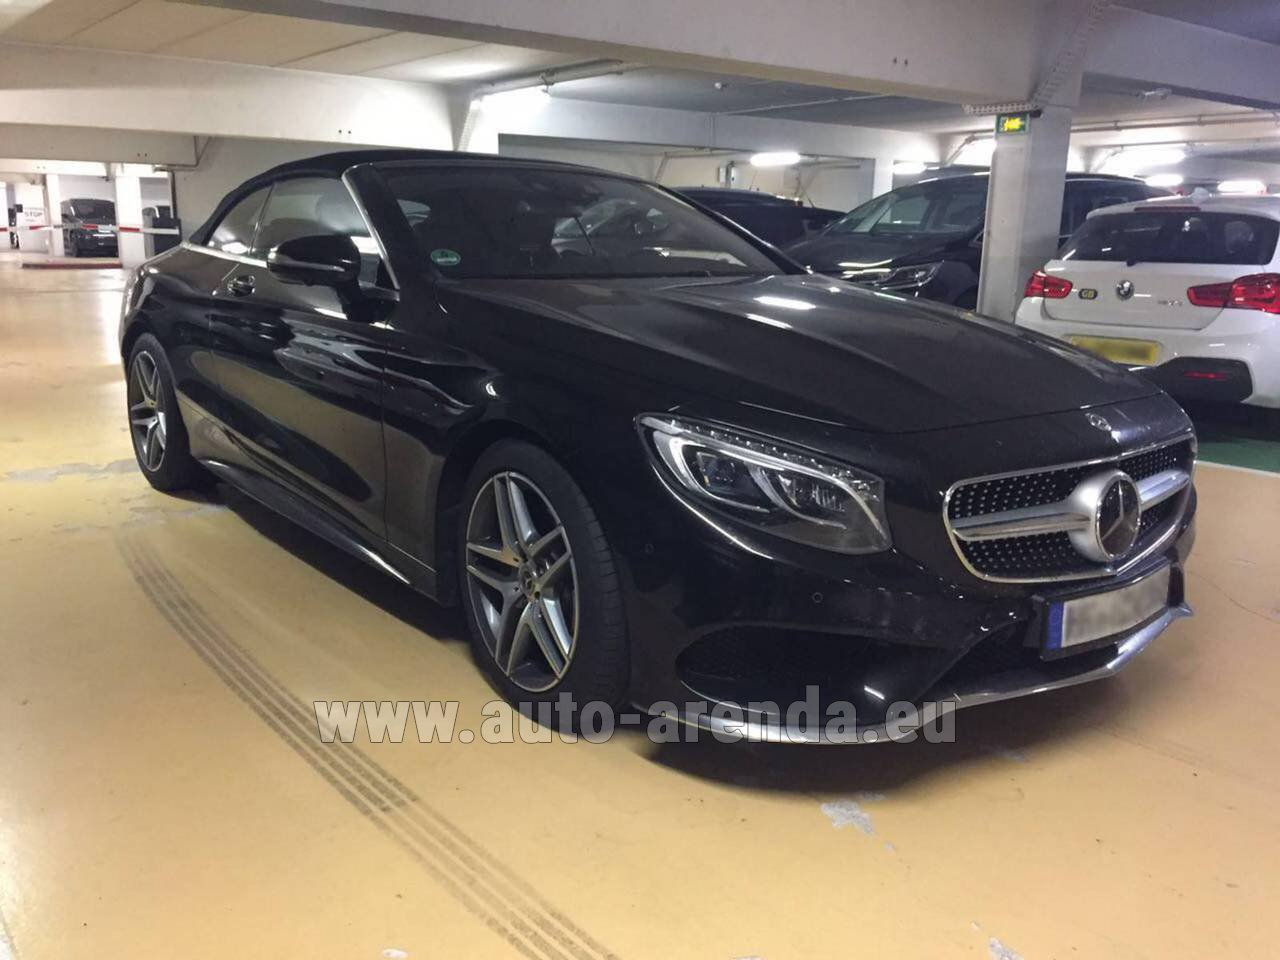 Luxembourg mercedes benz s 500 cabrio black rental for Mercedes benz rental prices